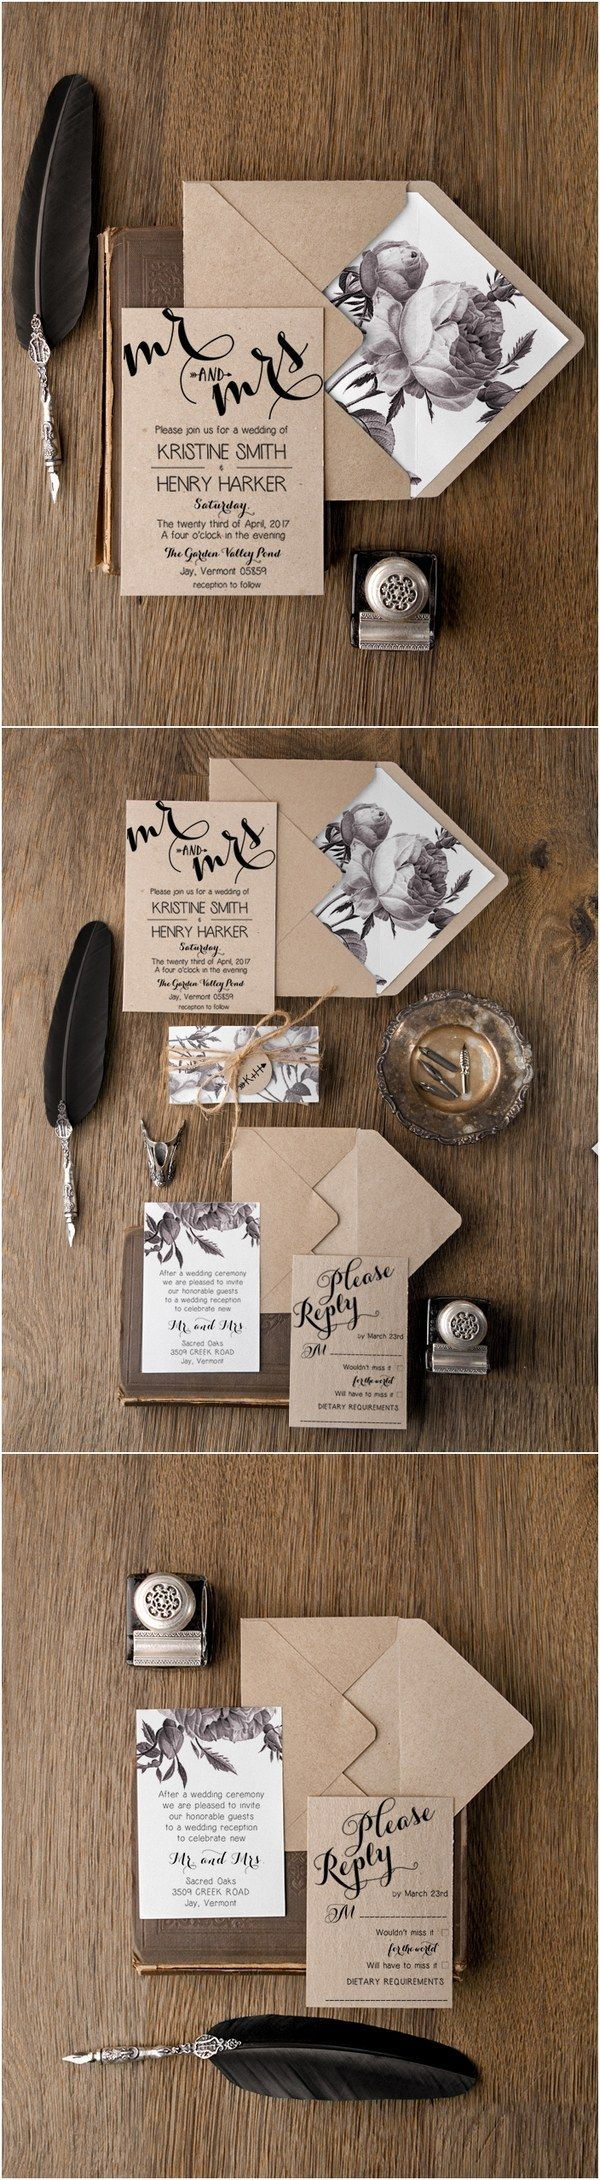 Rustic simple wedding invitations